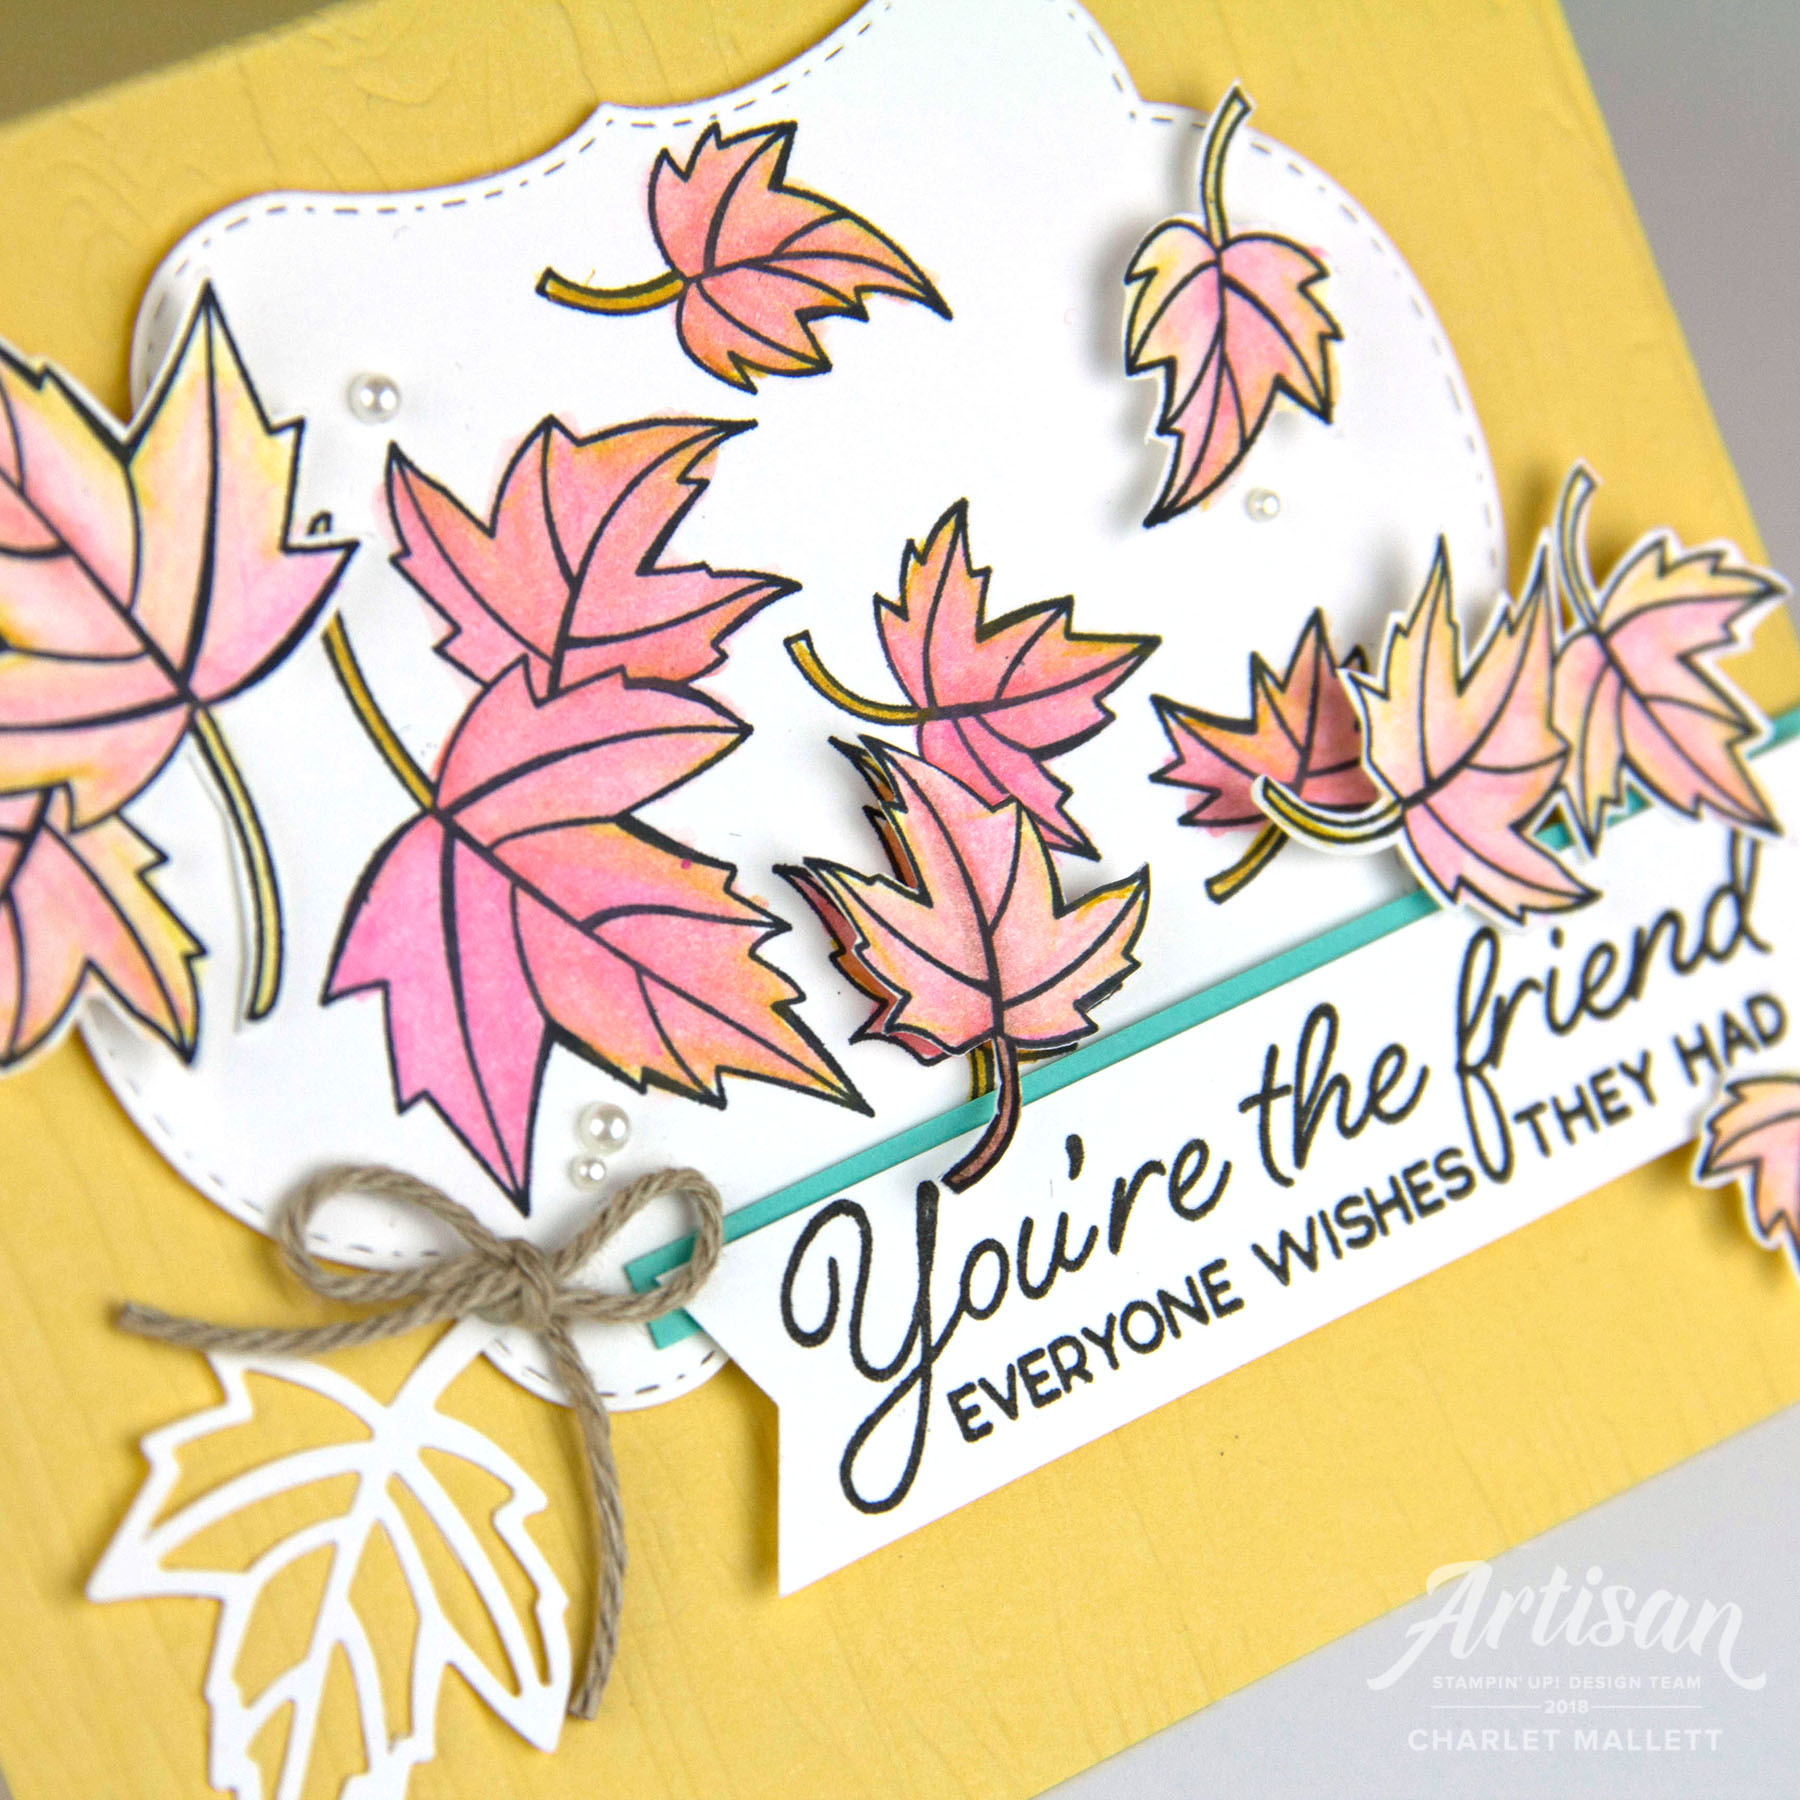 Falling Leaves card featuring the Blended Seasons Stamp set. Charlet Mallett - Stampin' Up!